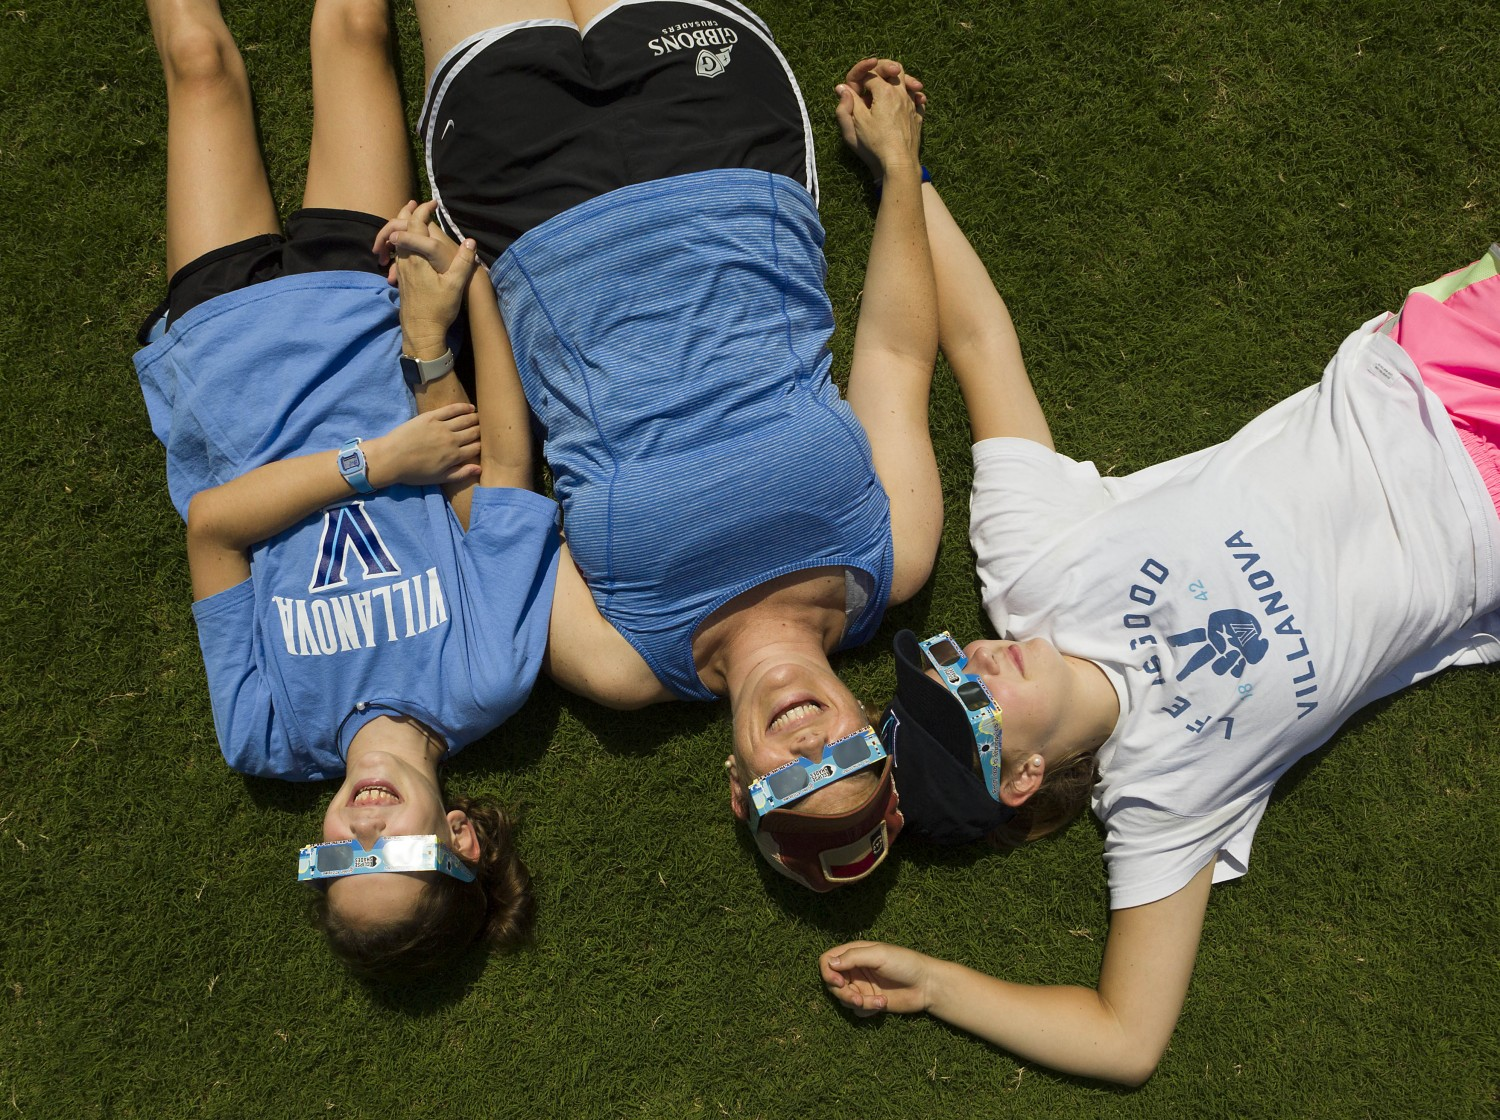 Kelly Curtis of Cary, center, lies on the grass with daughters Erin, left, and Emily, ages 11 and 17, during the solar eclipse.